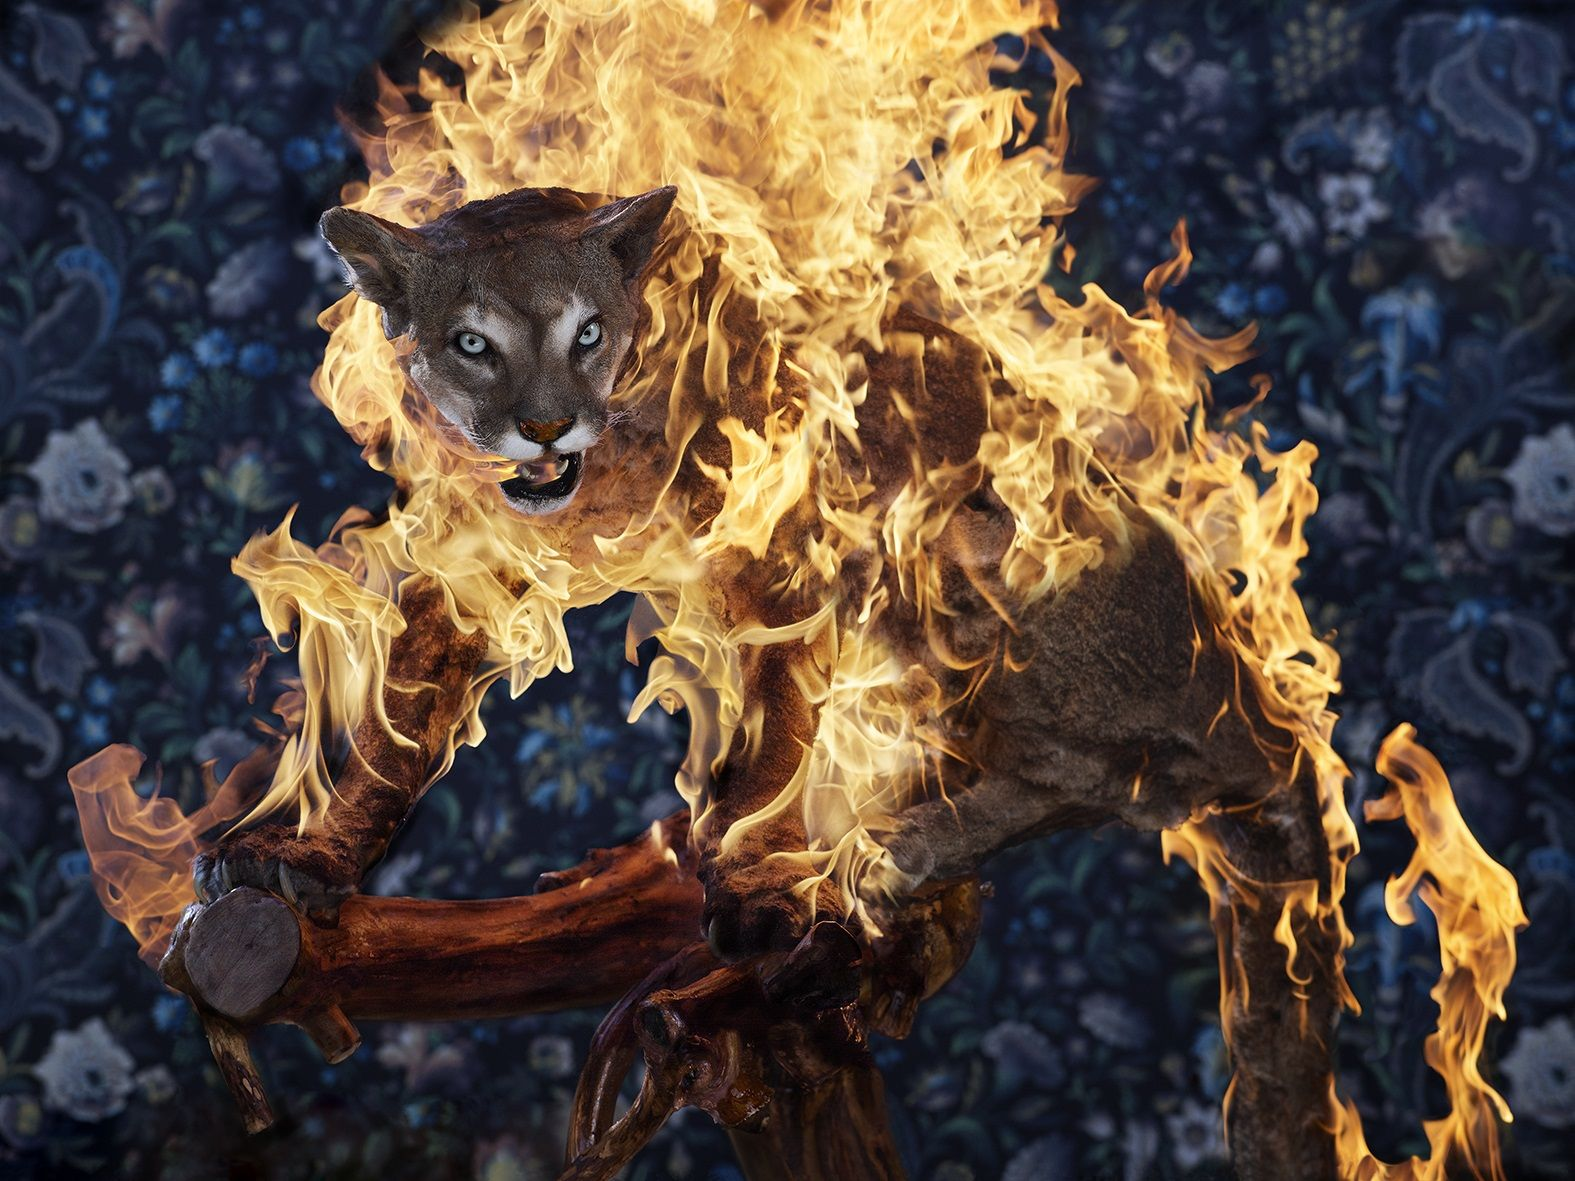 Puma, Residence of Impermanence series - Christian Houge - Photography